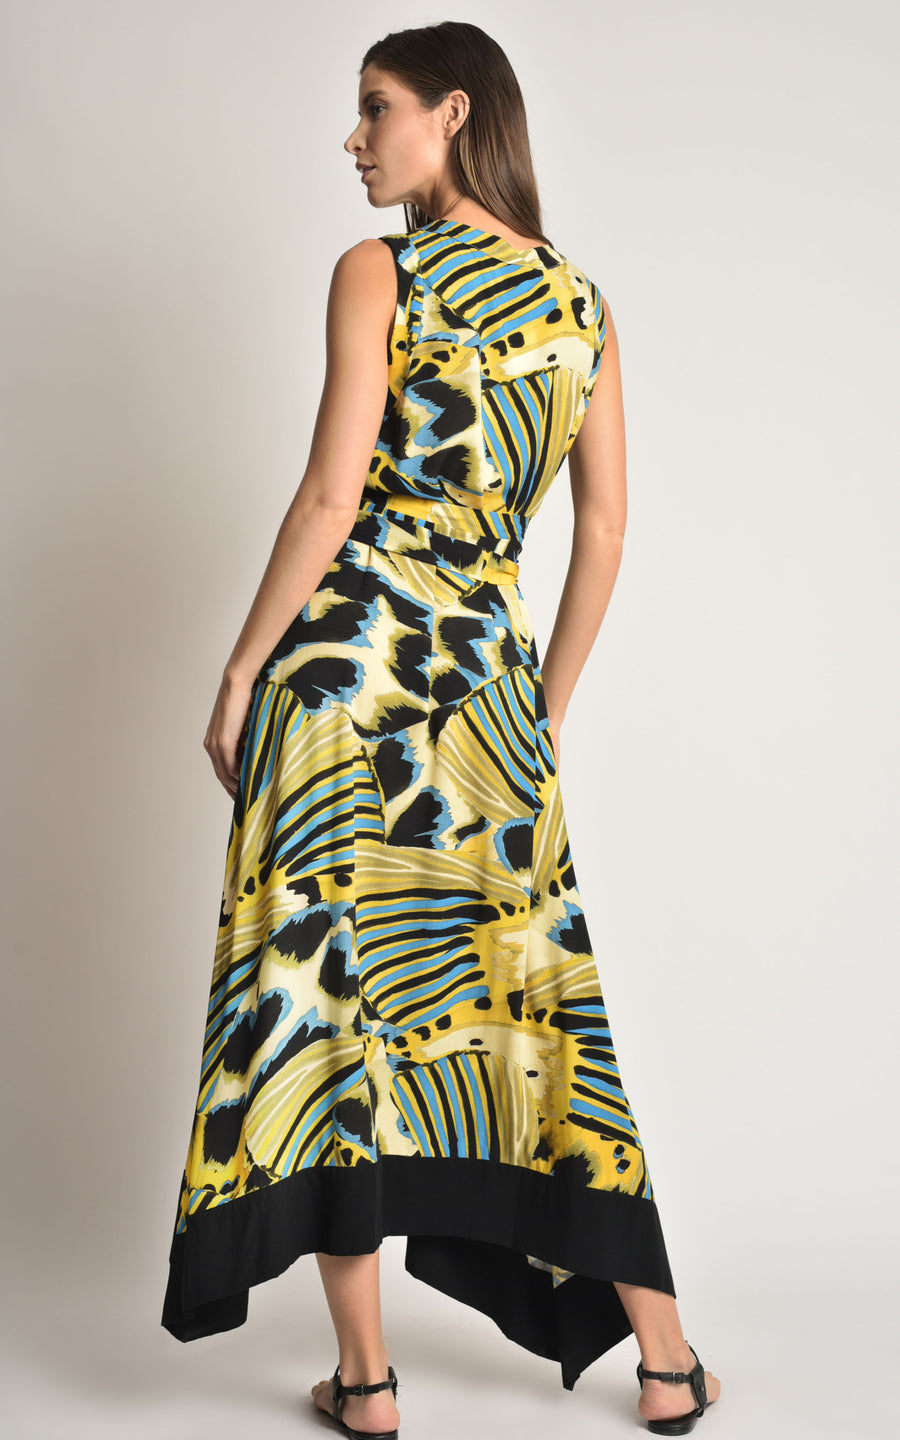 Panapana Barred Viscose Dress